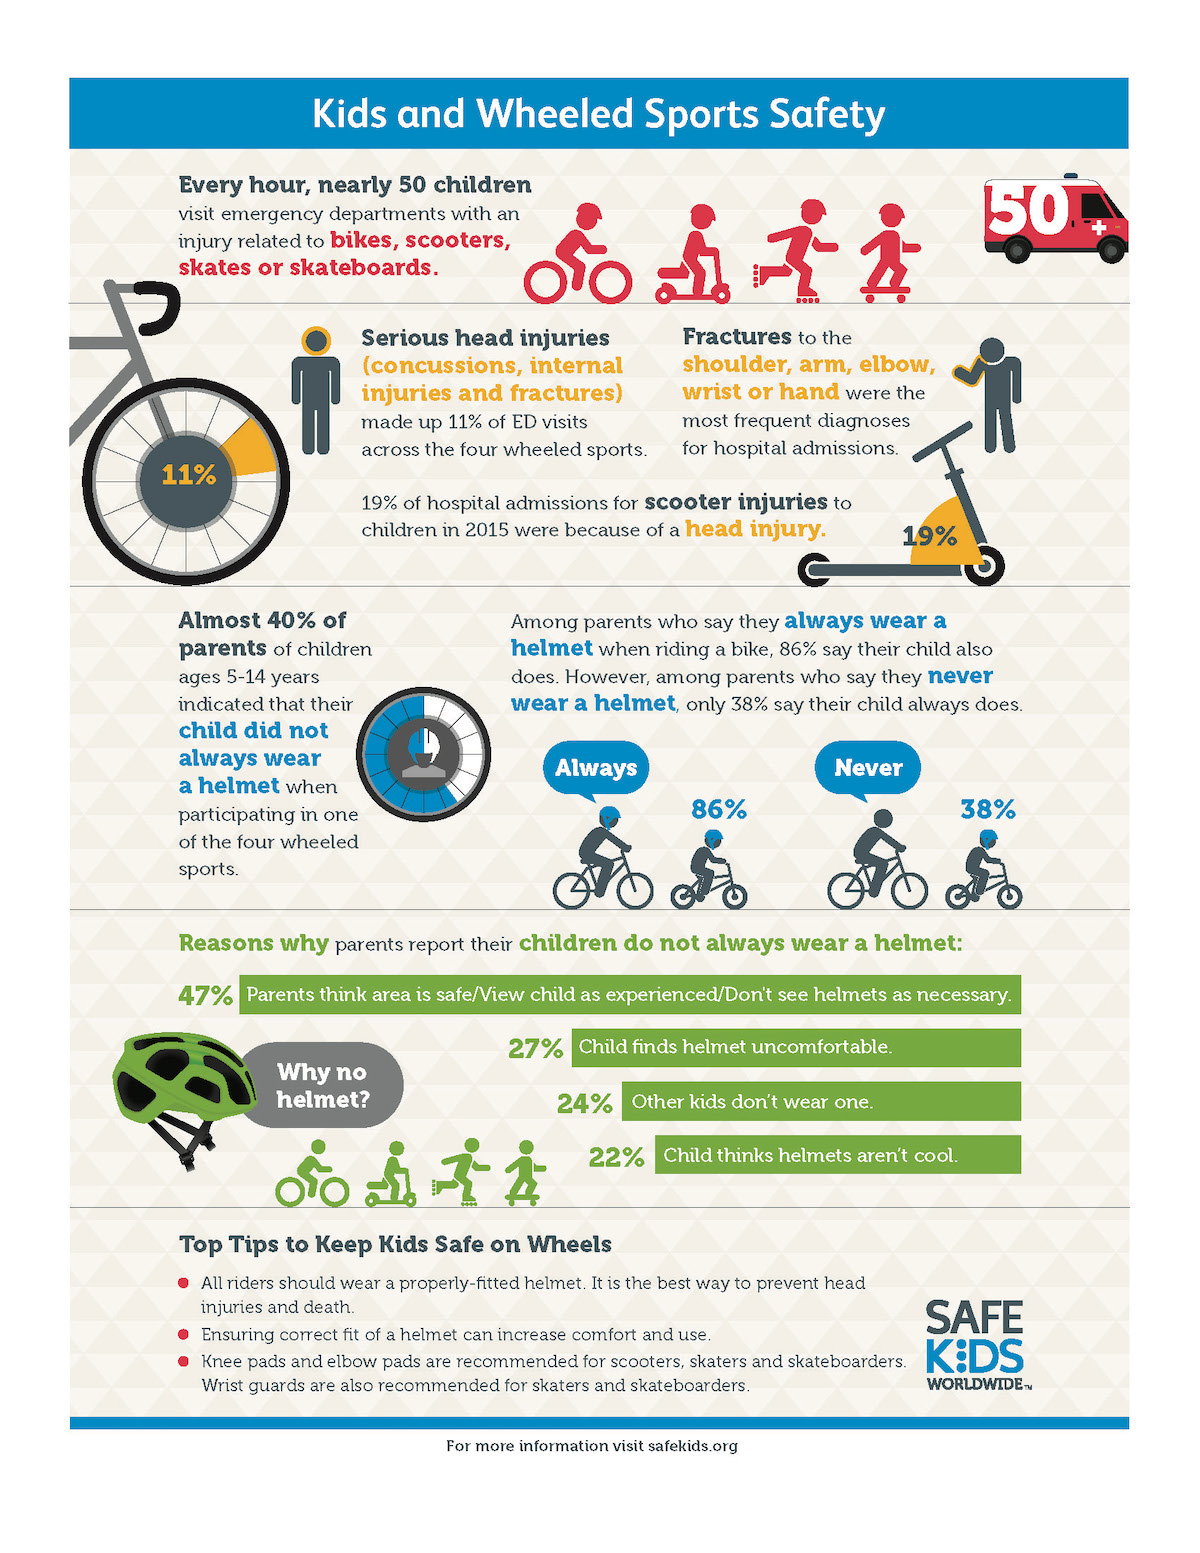 wheeled_sports_safety_infographic